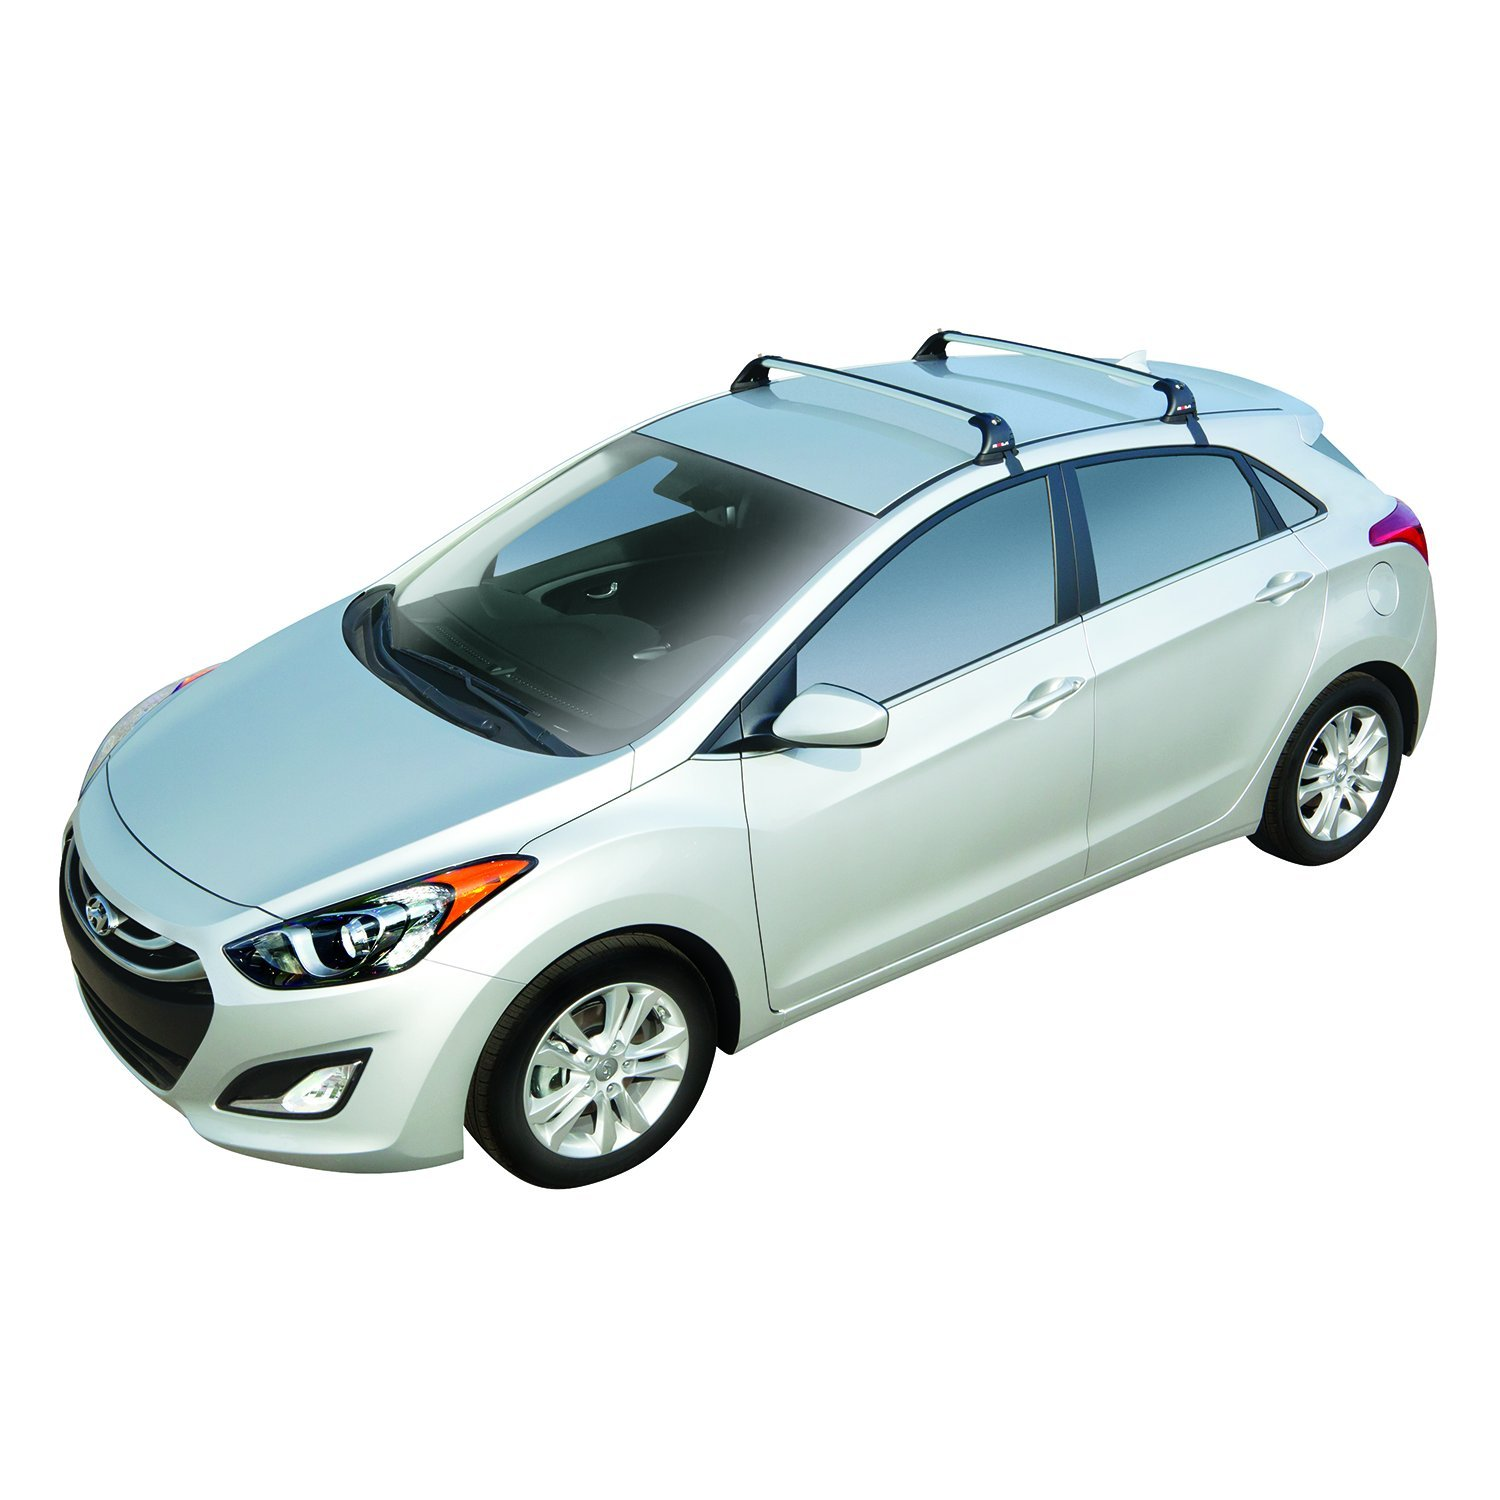 Hyundai Elantra Bike Rack Autos Post